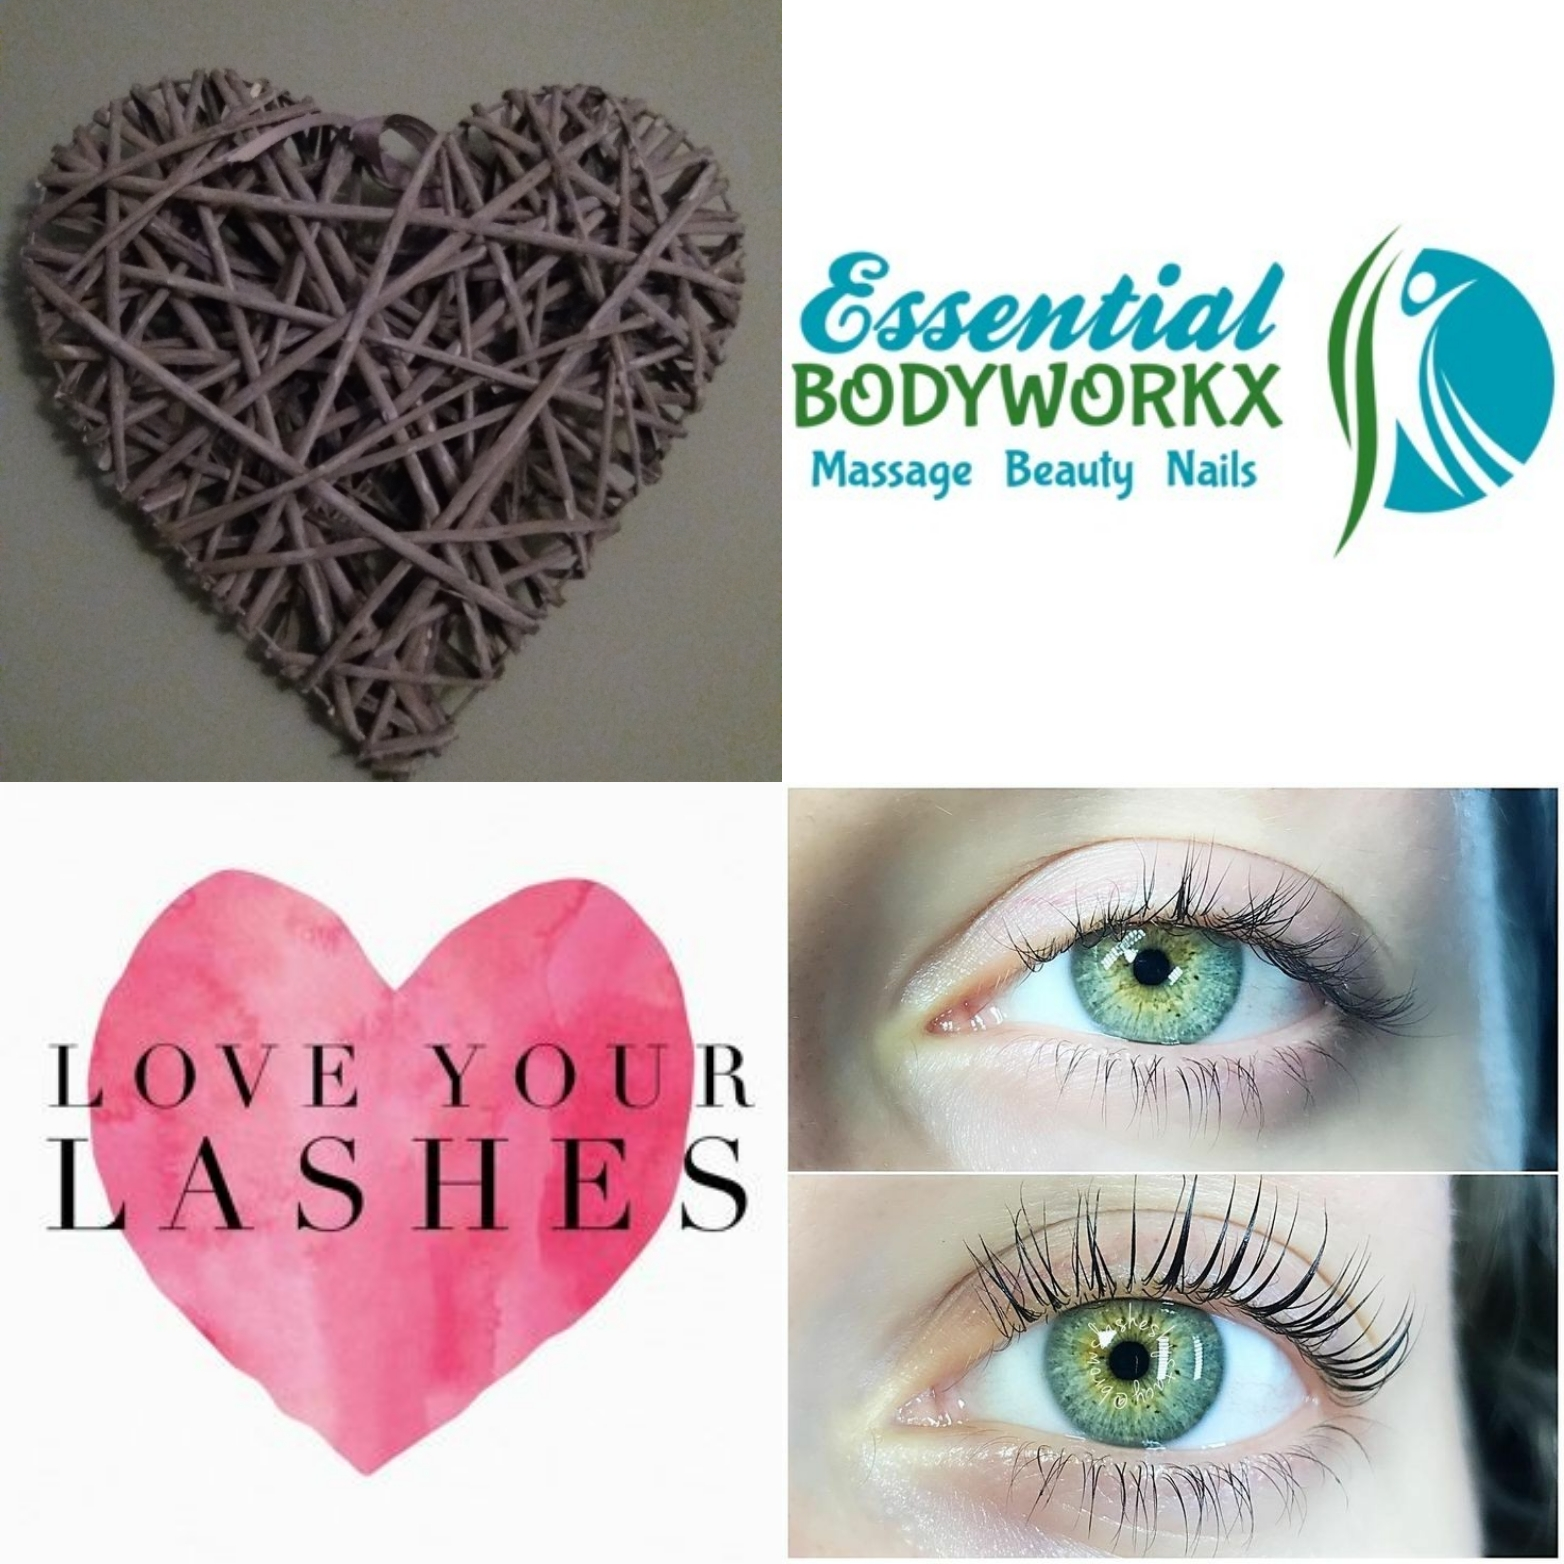 Lash lift & Tint only £25 - for a fuller natural look x